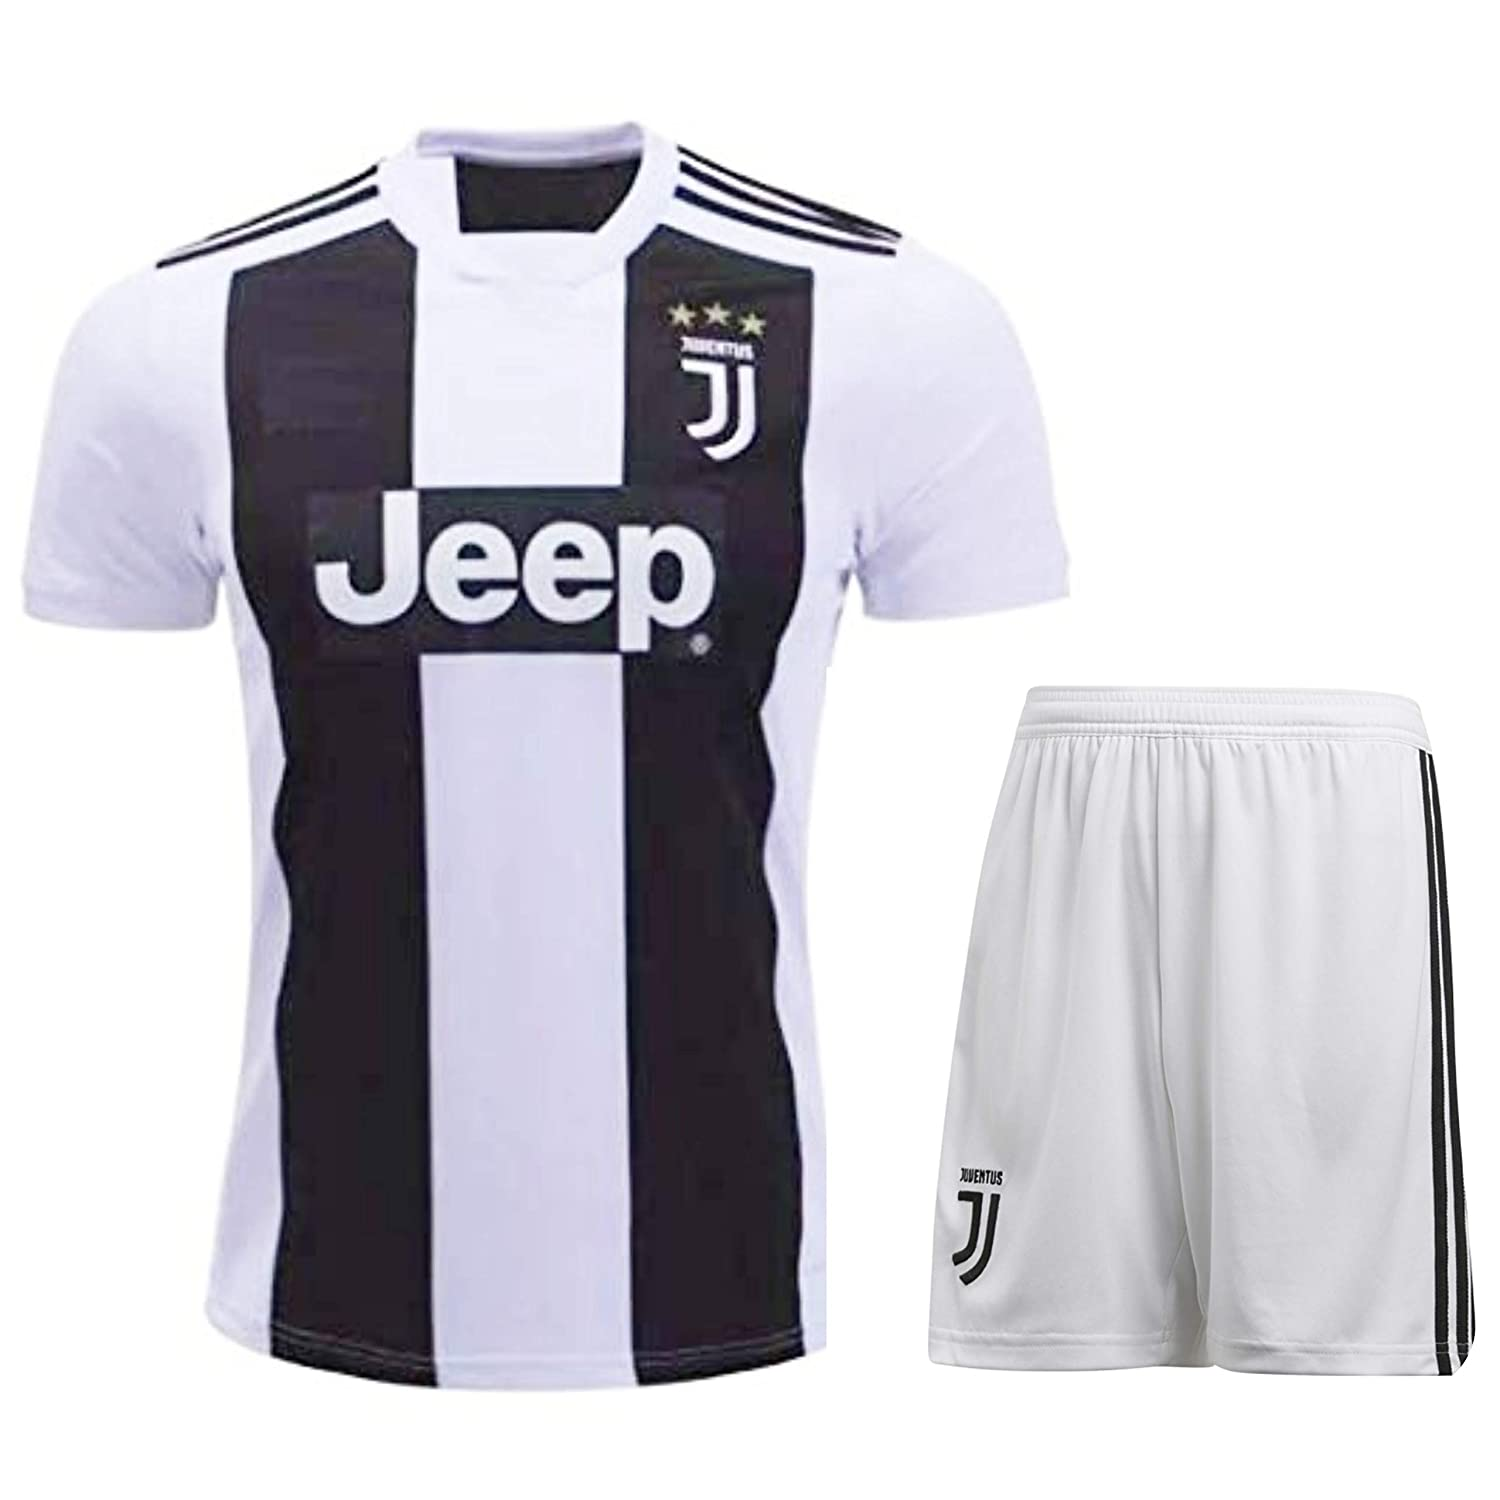 buy online eaca6 404e6 HeadTurners Christiano Ronaldo Juventus Jersey Set (T Shirt and Shorts)  (NonBranded)